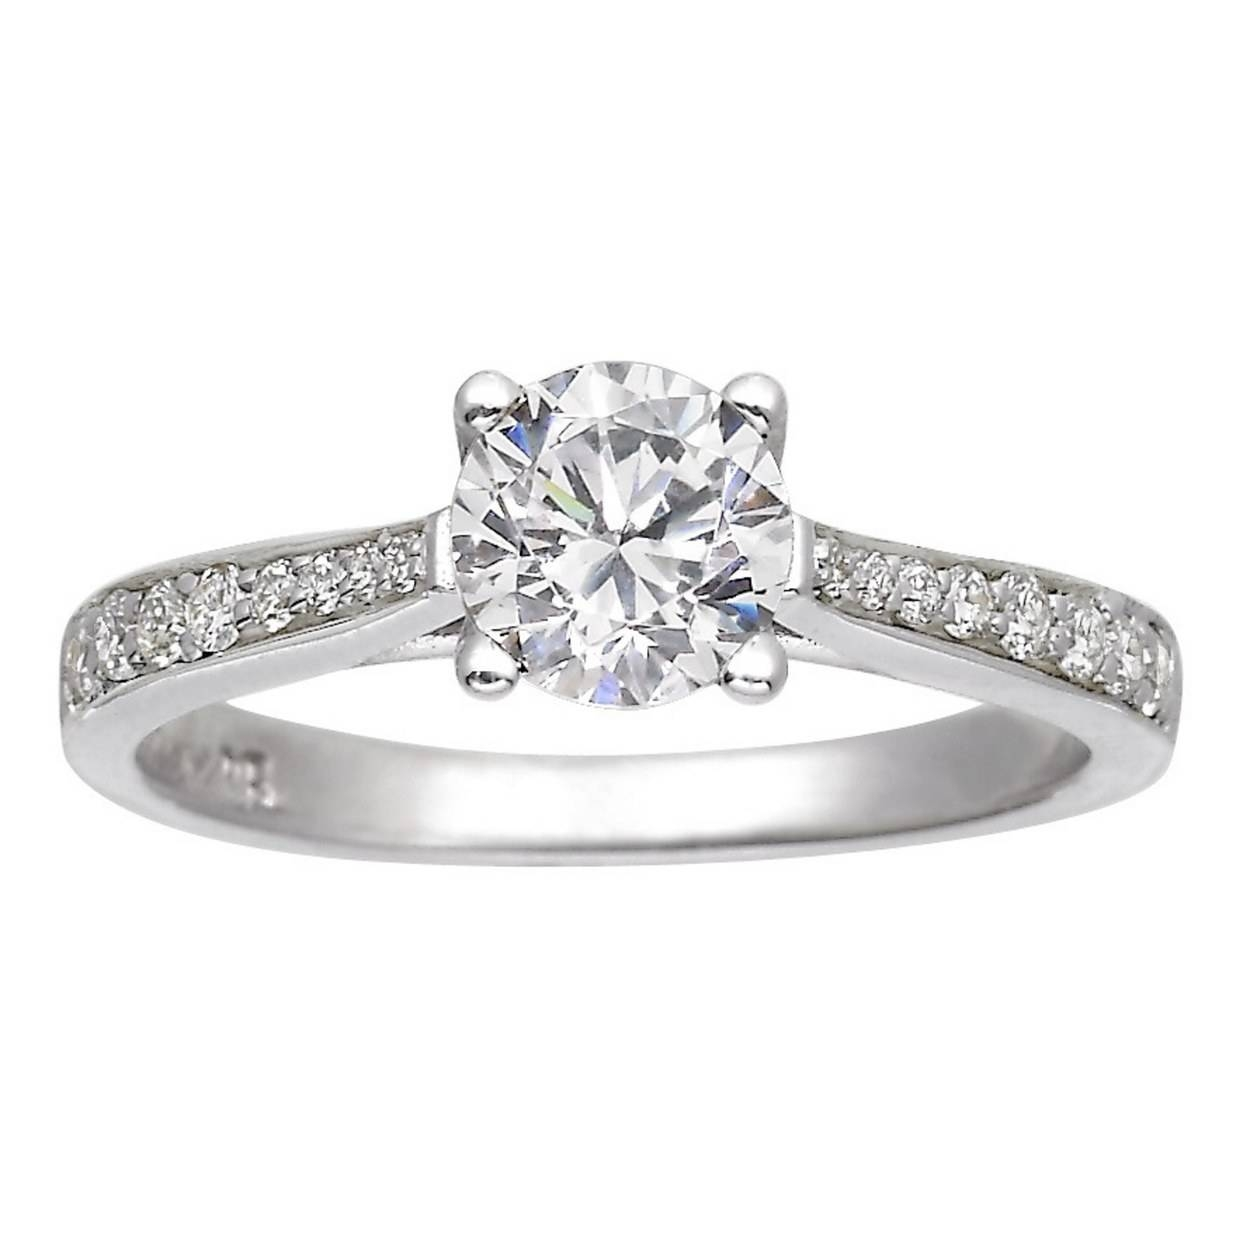 62 Diamond Engagement Rings Under $5,000 | Glamour In Diamonds Engagement Rings (View 2 of 15)